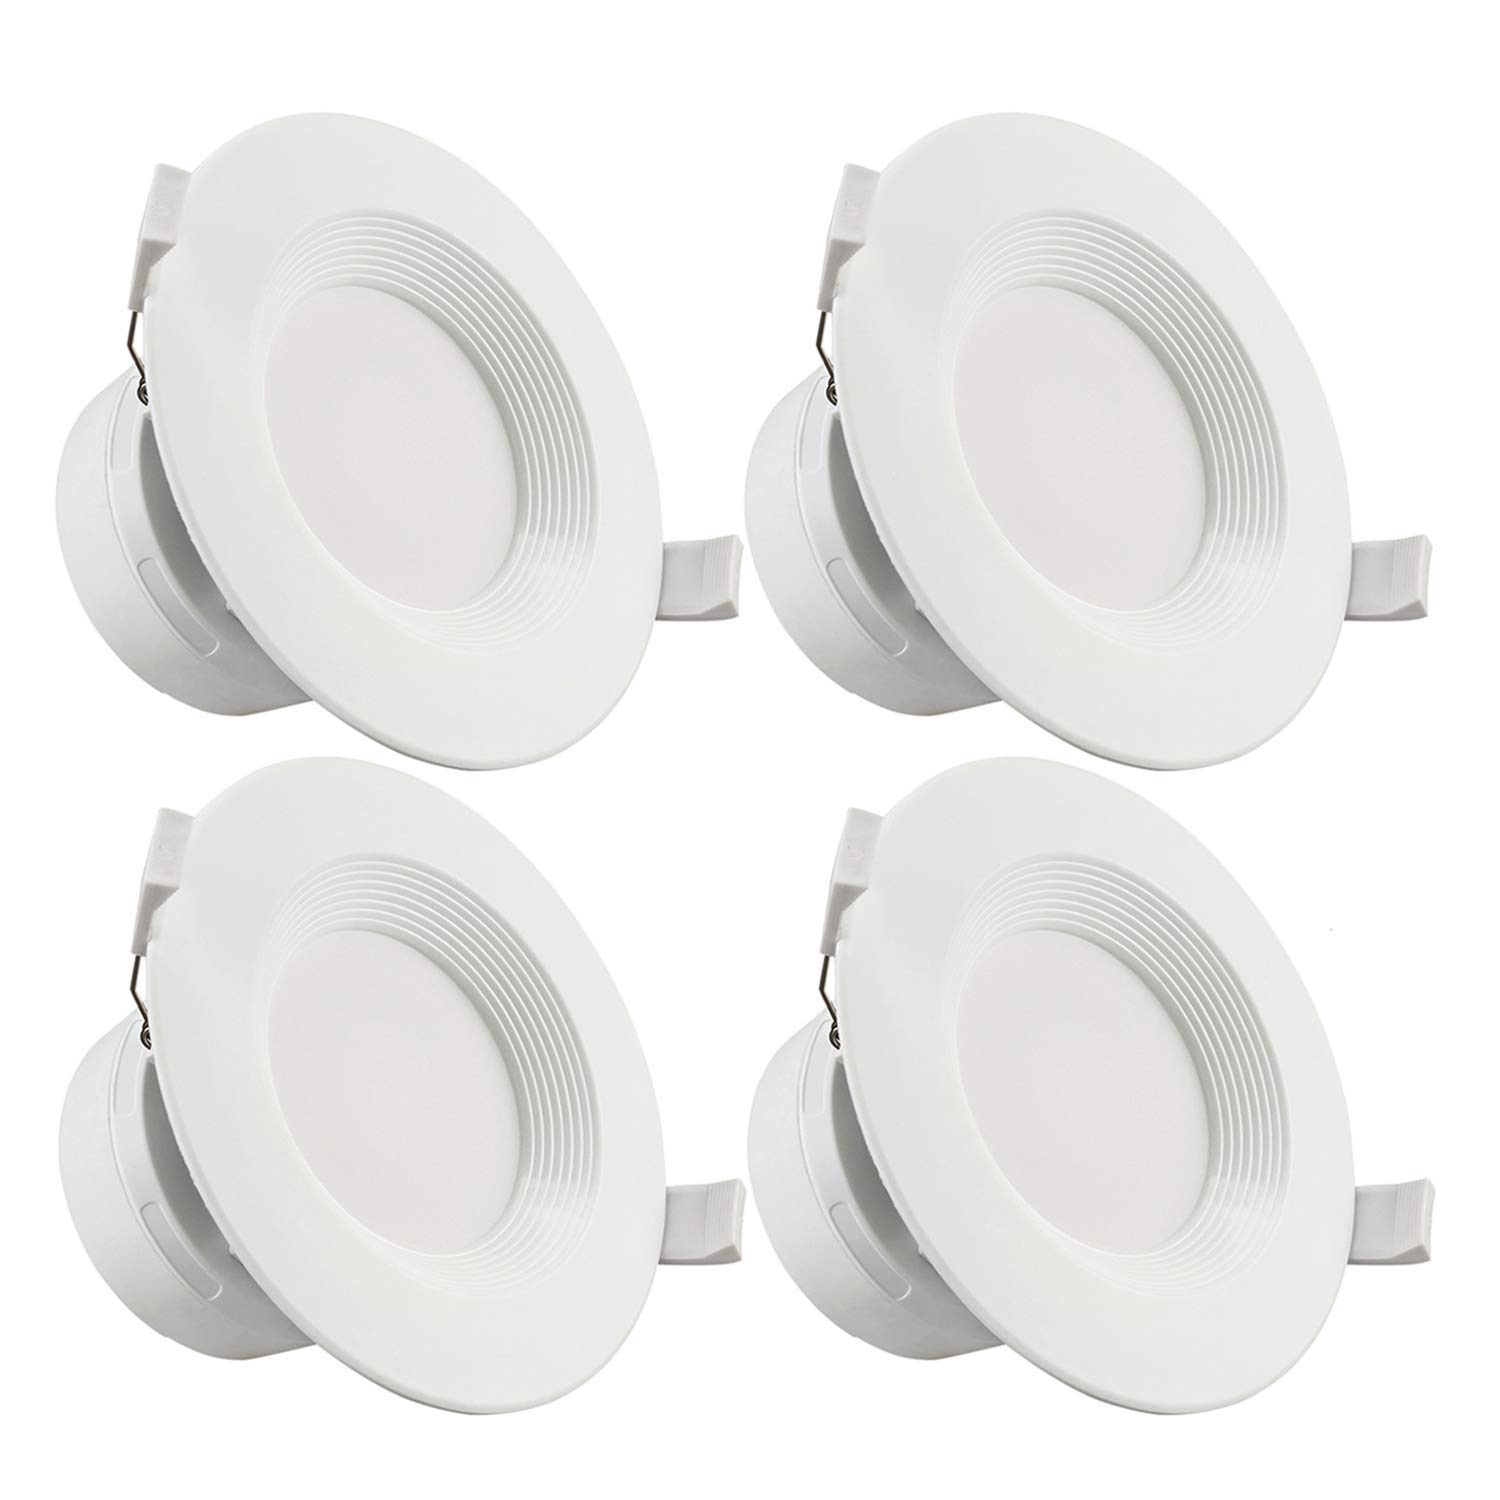 TORCHSTAR 4 Pack 4 Inch LED Recessed Downlight with Junction Box, 7W (60W Eqv.) Dimmable LED Ceiling Light Fixture, IC-Rated & Air Tight, Wet Location, 5000K Daylight, UL-Listed, 5 Years Warranty